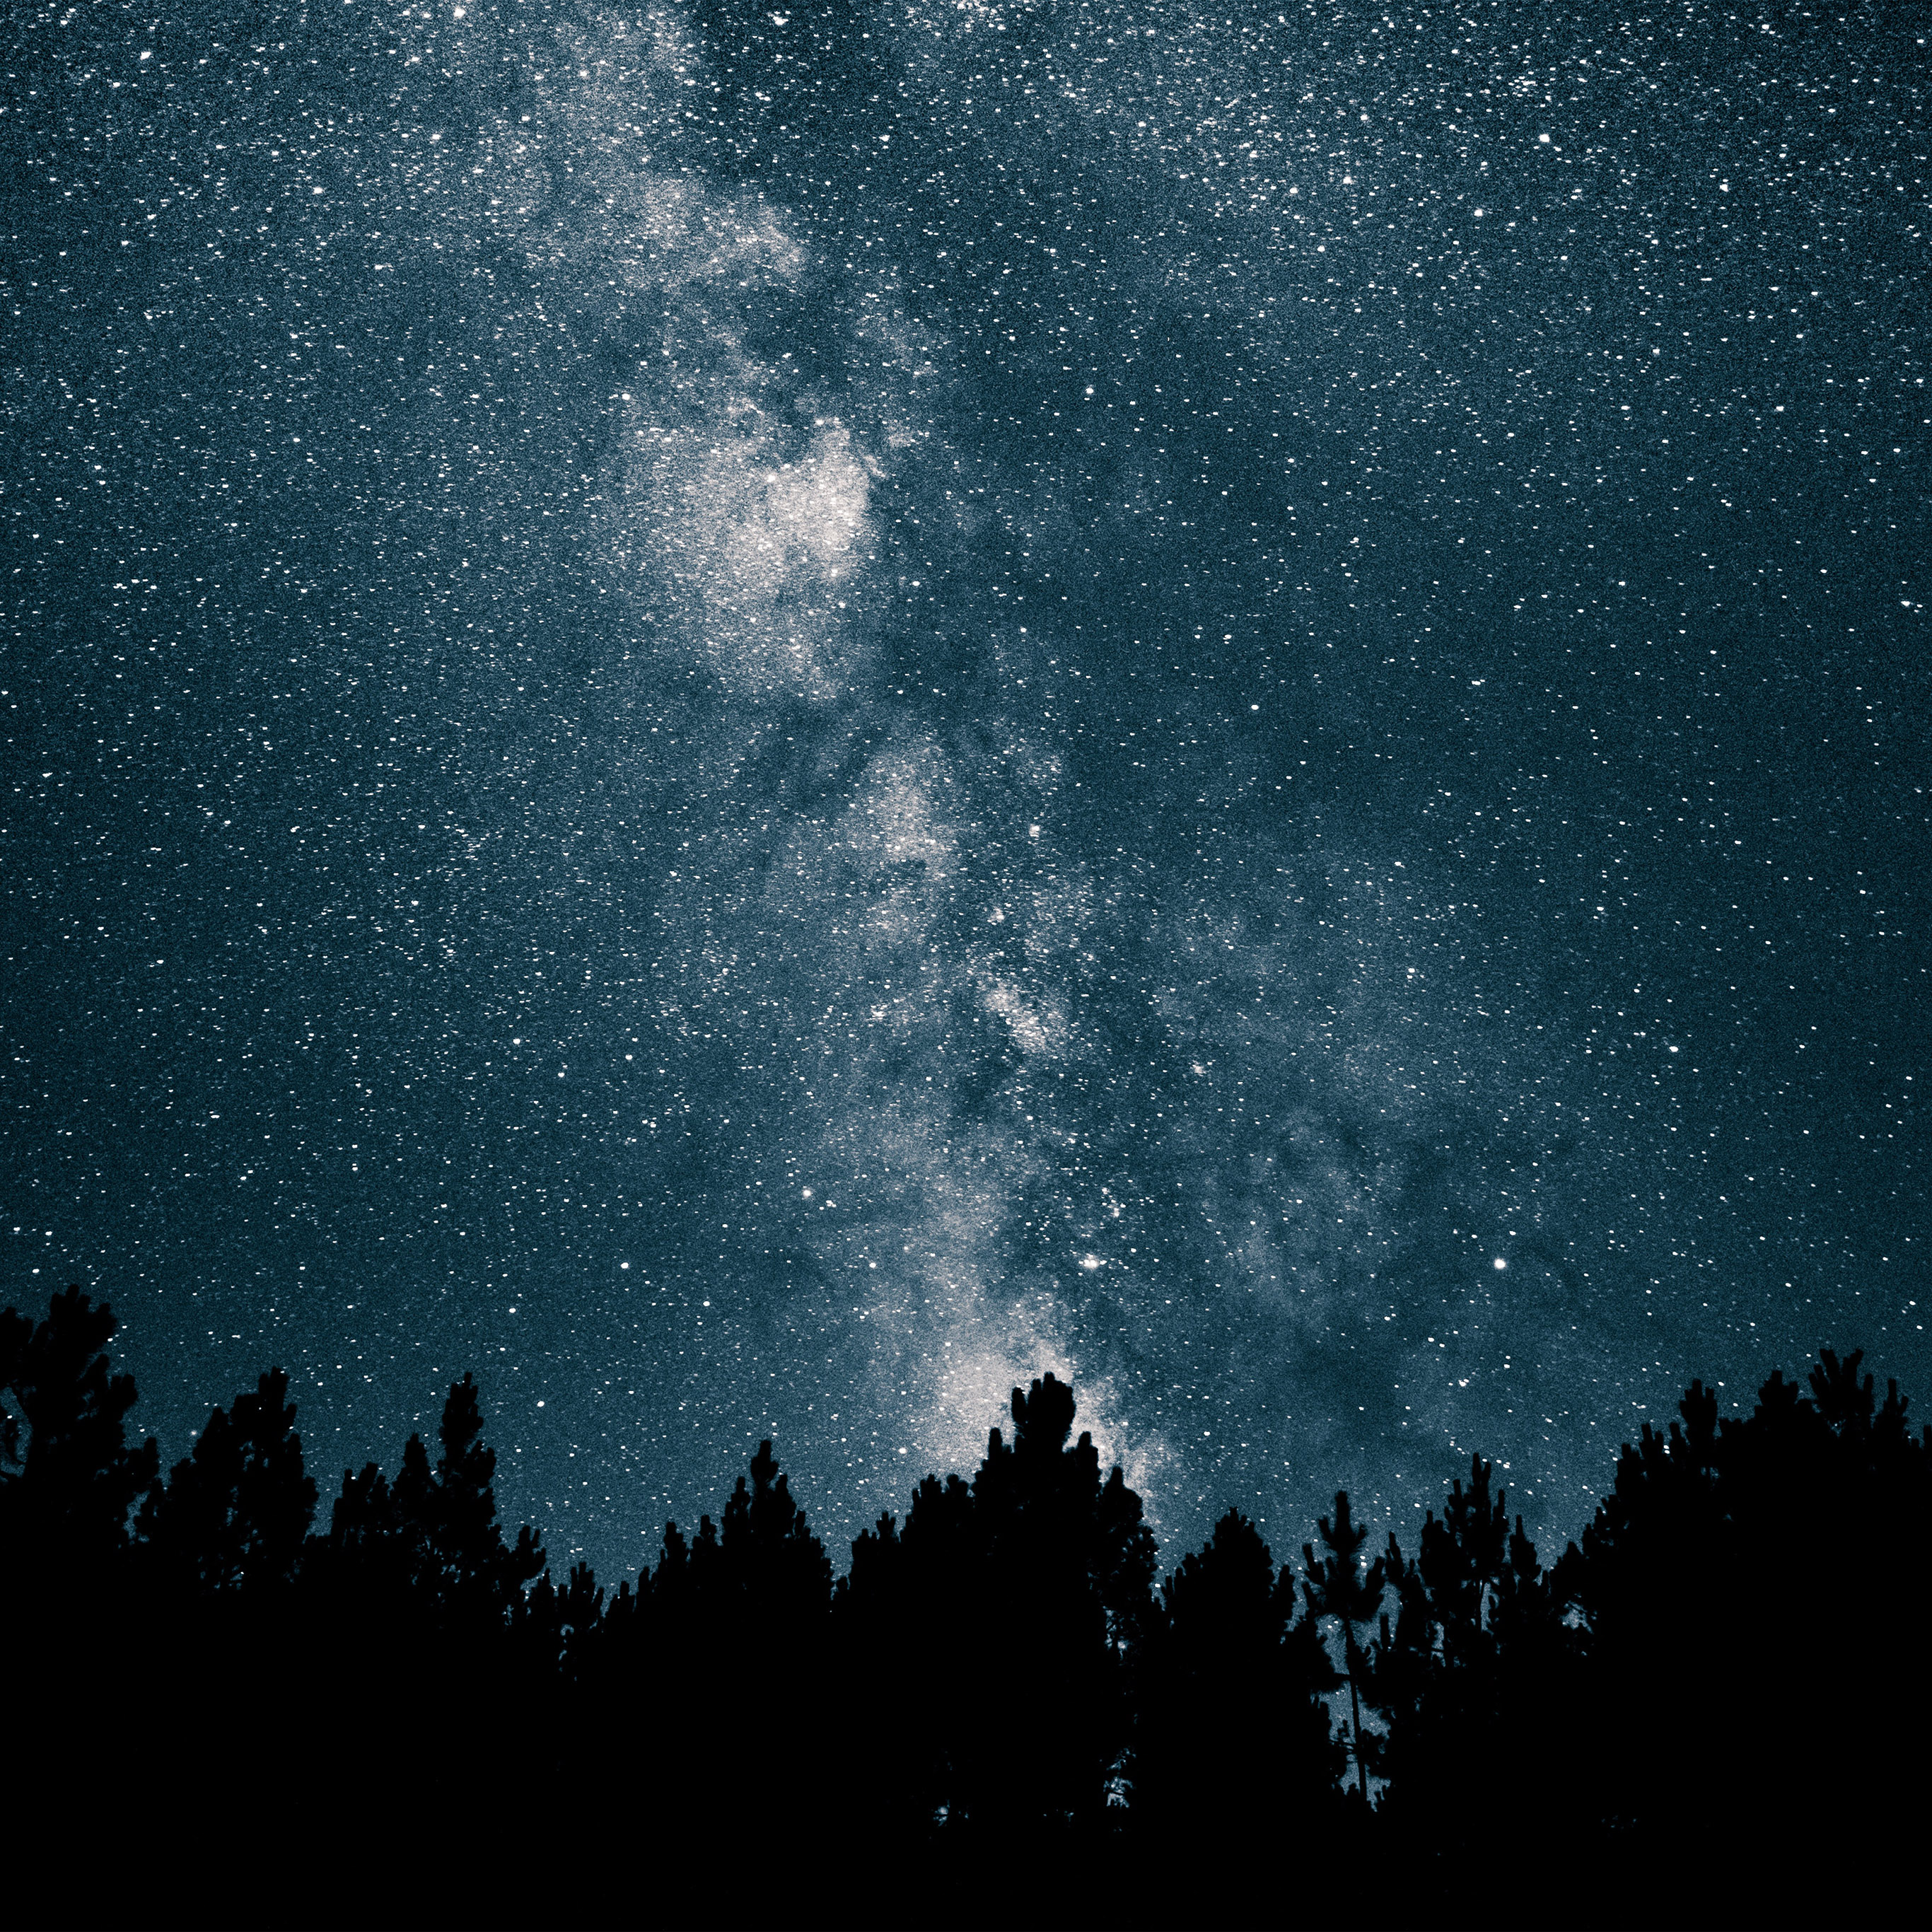 Best Apple Logo Iphone Wallpaper: Nw75-night-sky-space-star-mountain-nature-wallpaper